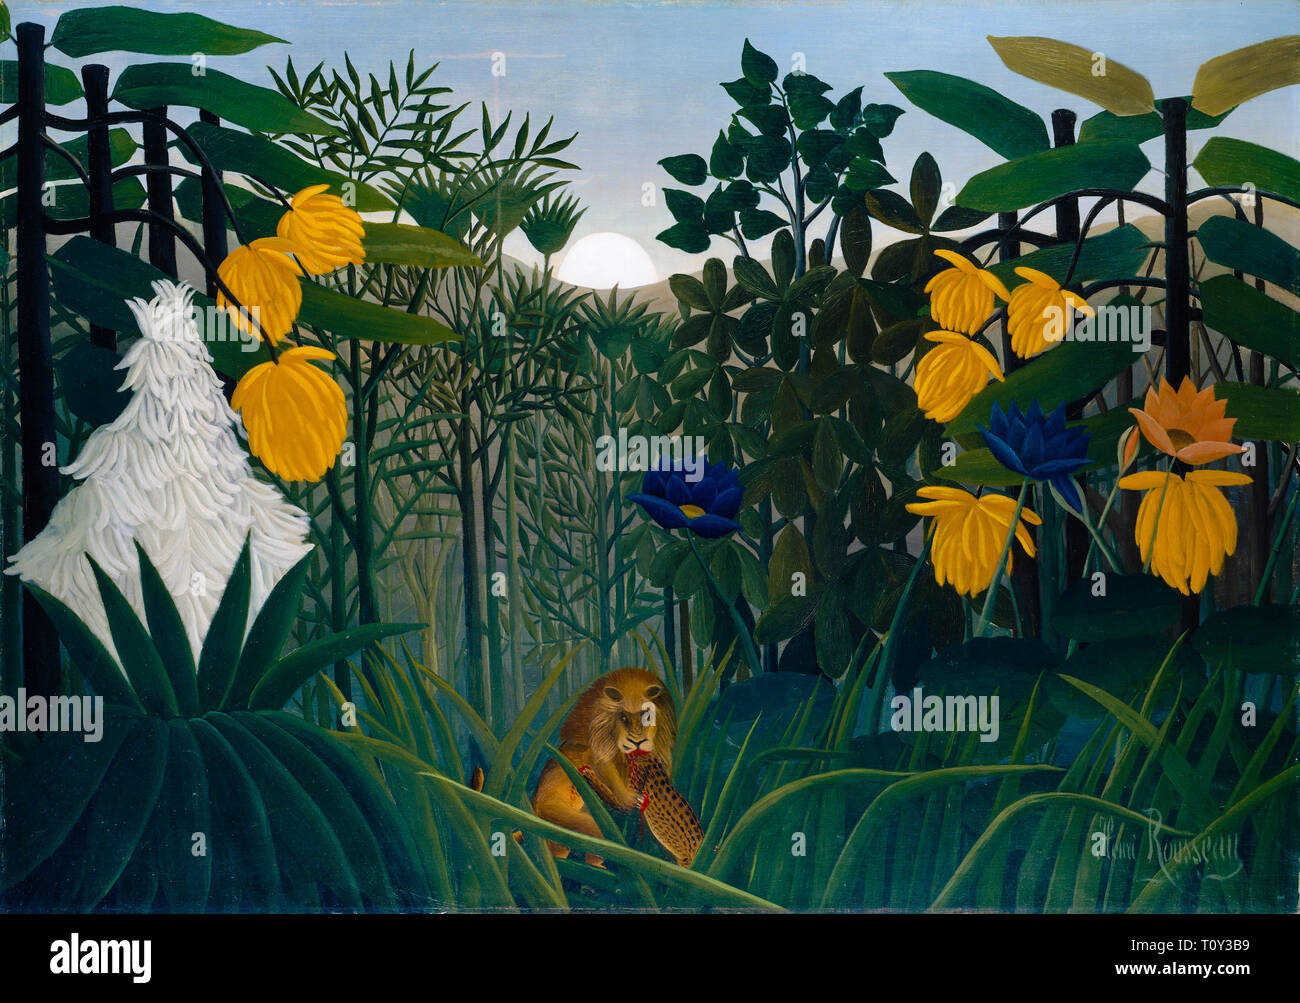 Henri Rousseau, The Repast of the Lion, jungle painting, 1907 - Stock Image